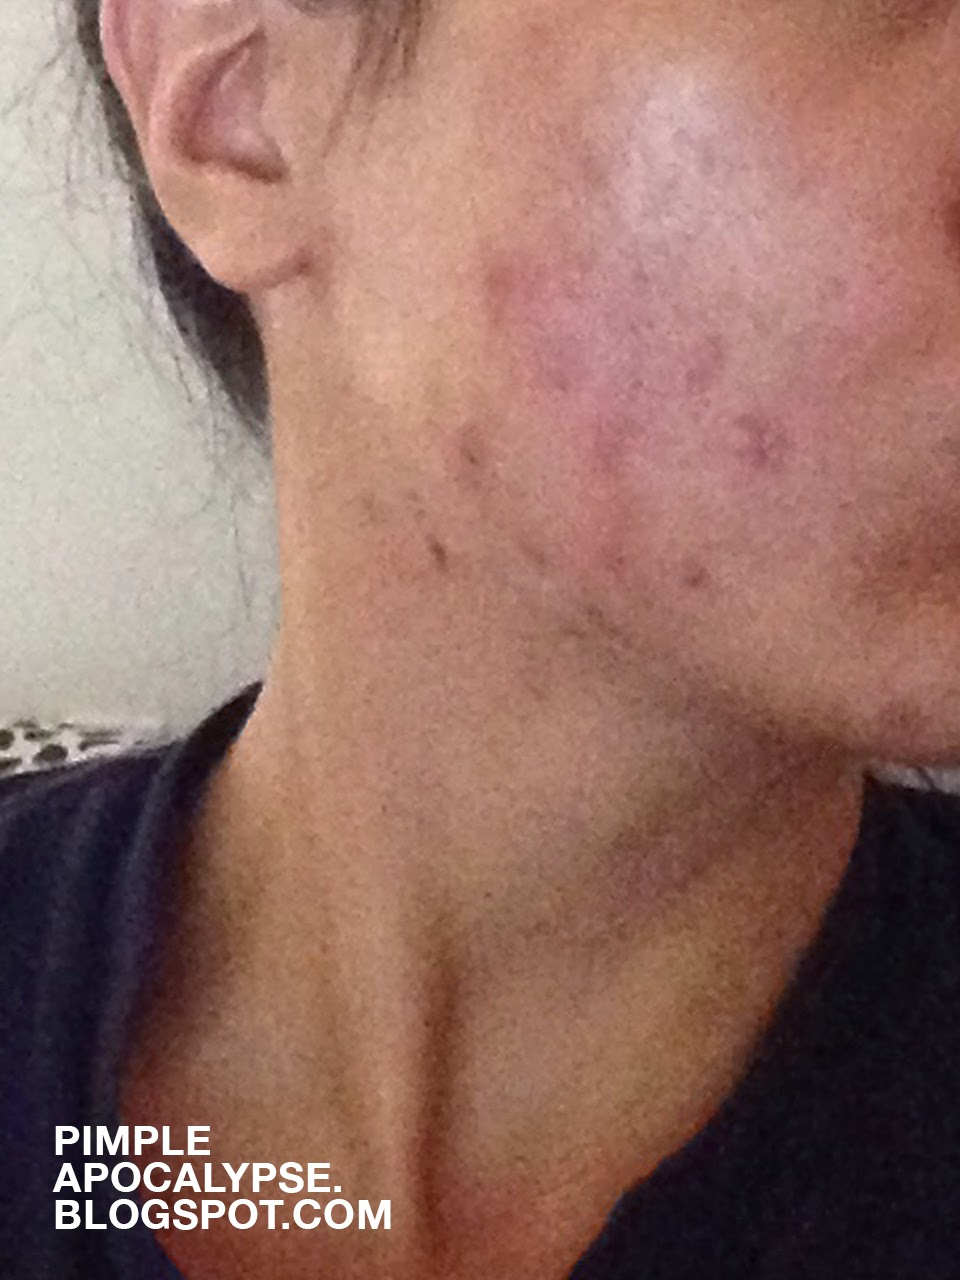 acne breakouts, clogged pores, asian skin, hyper pigmentation, closed comedo, whiteheads, benzoyl peroxide